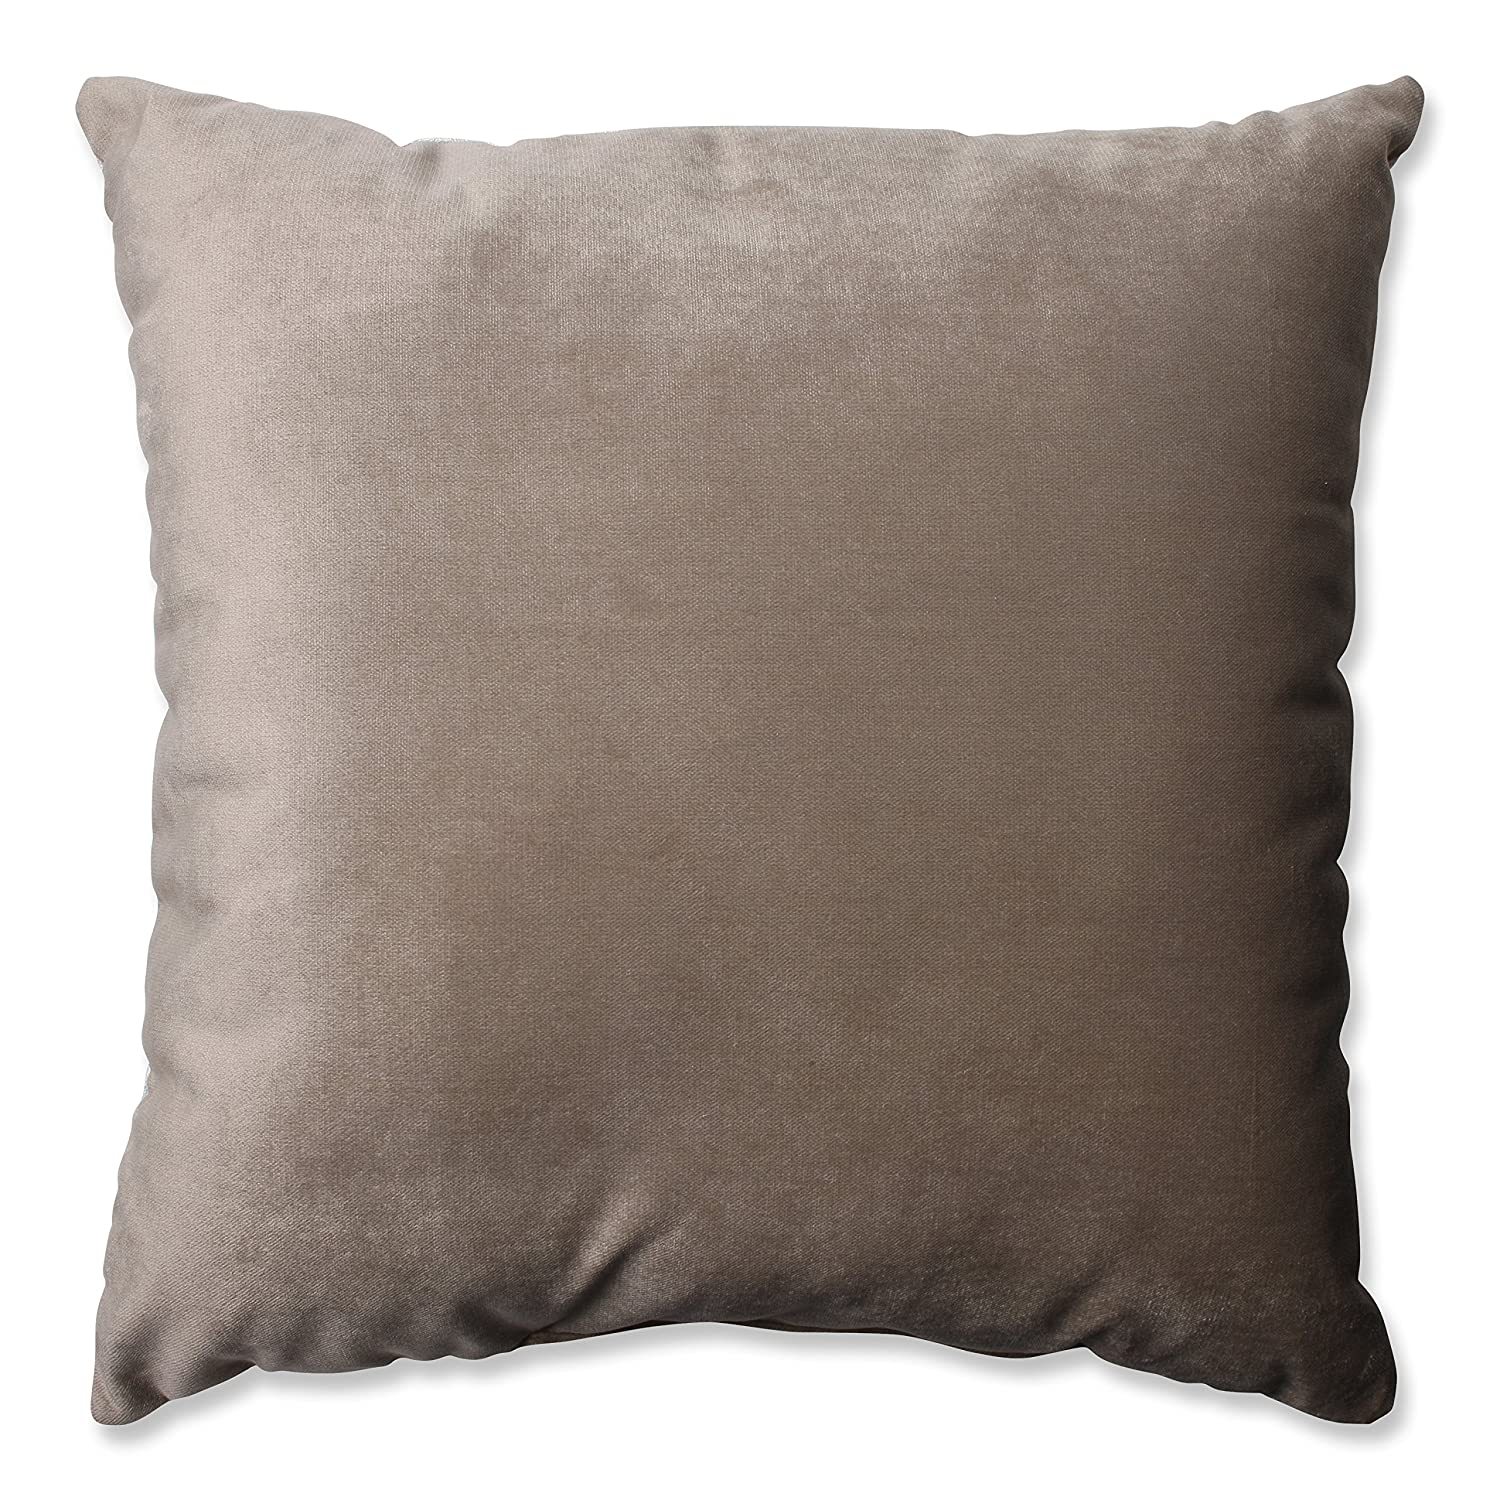 16.5-inch Throw Pillow